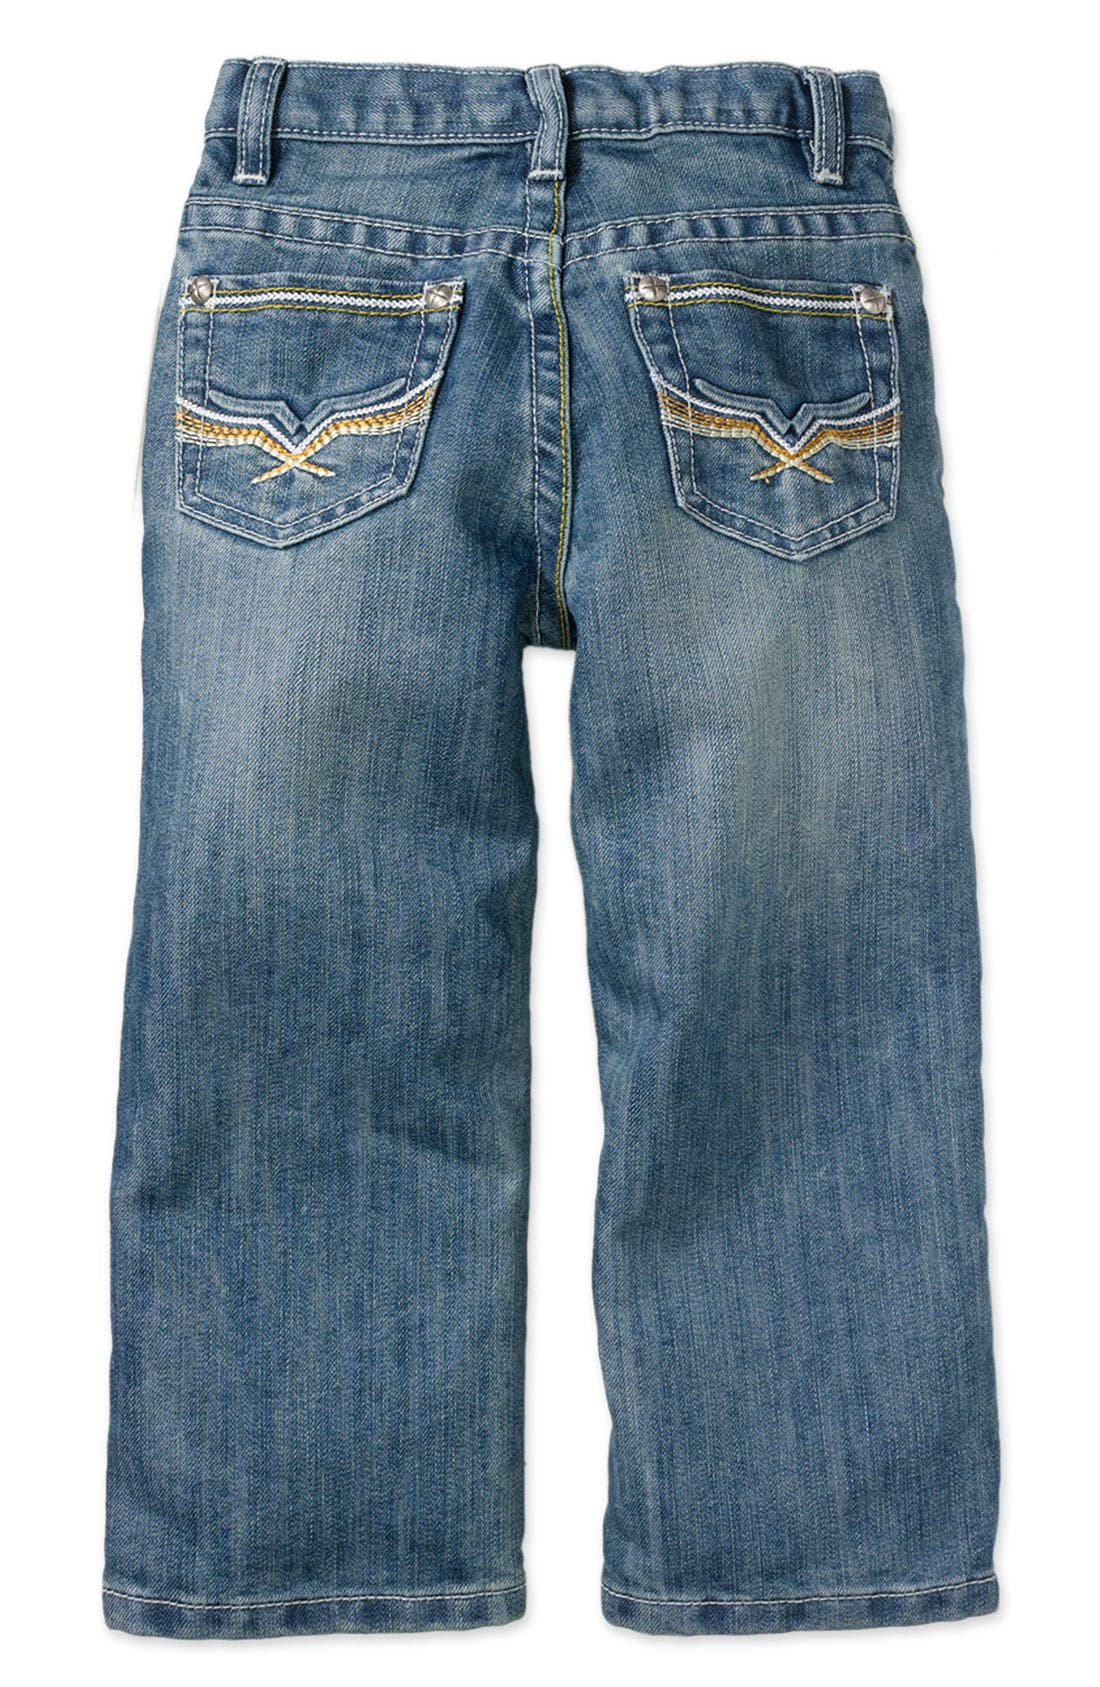 Alternate Image 1 Selected - Request 'Anson' Jeans (Little Boys)